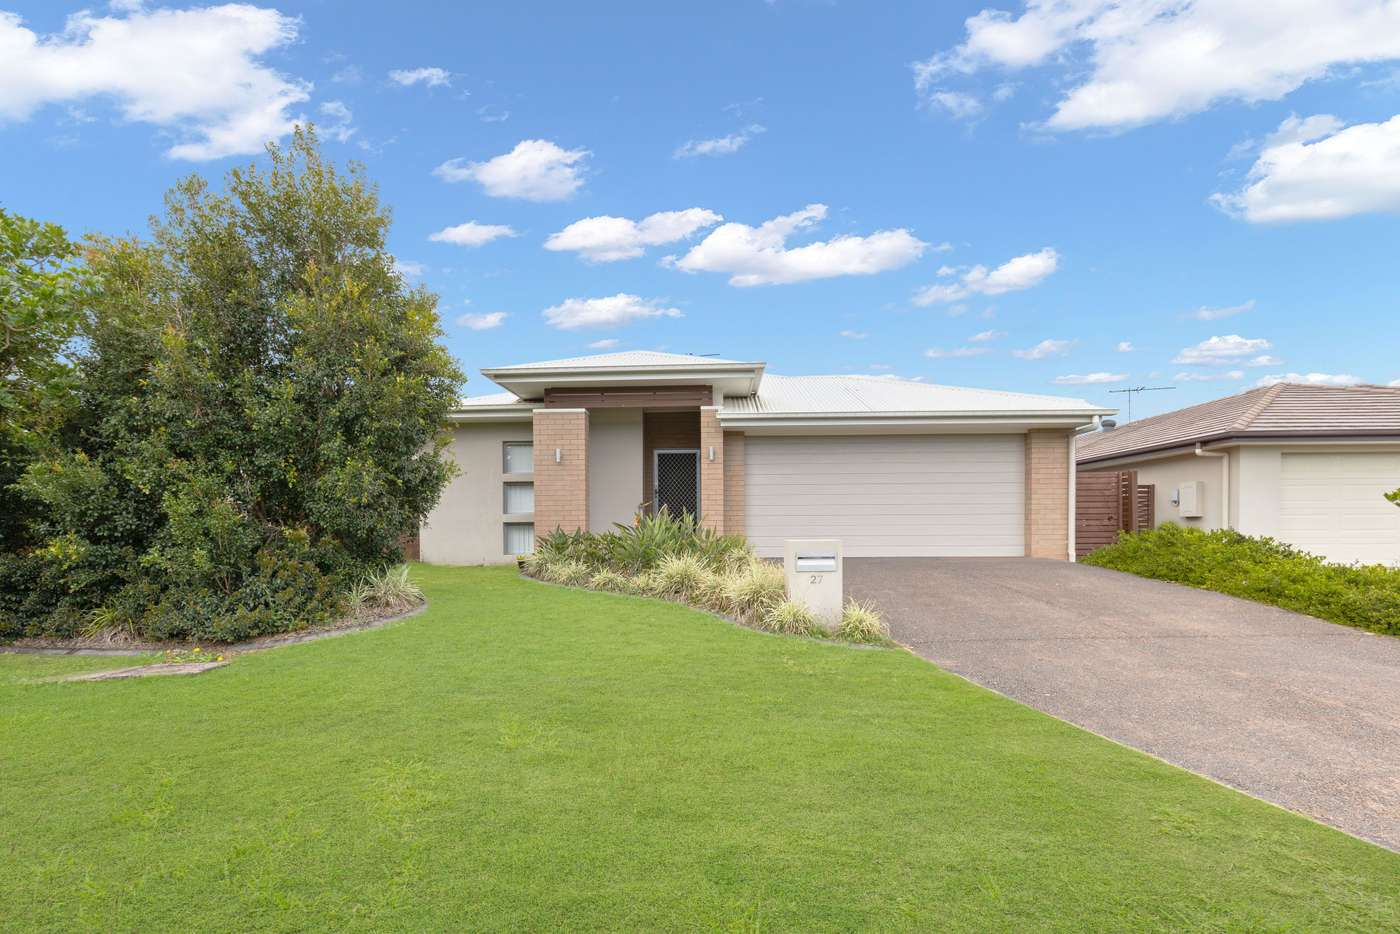 Main view of Homely house listing, 27 Glengrove Circuit, Mango Hill QLD 4509